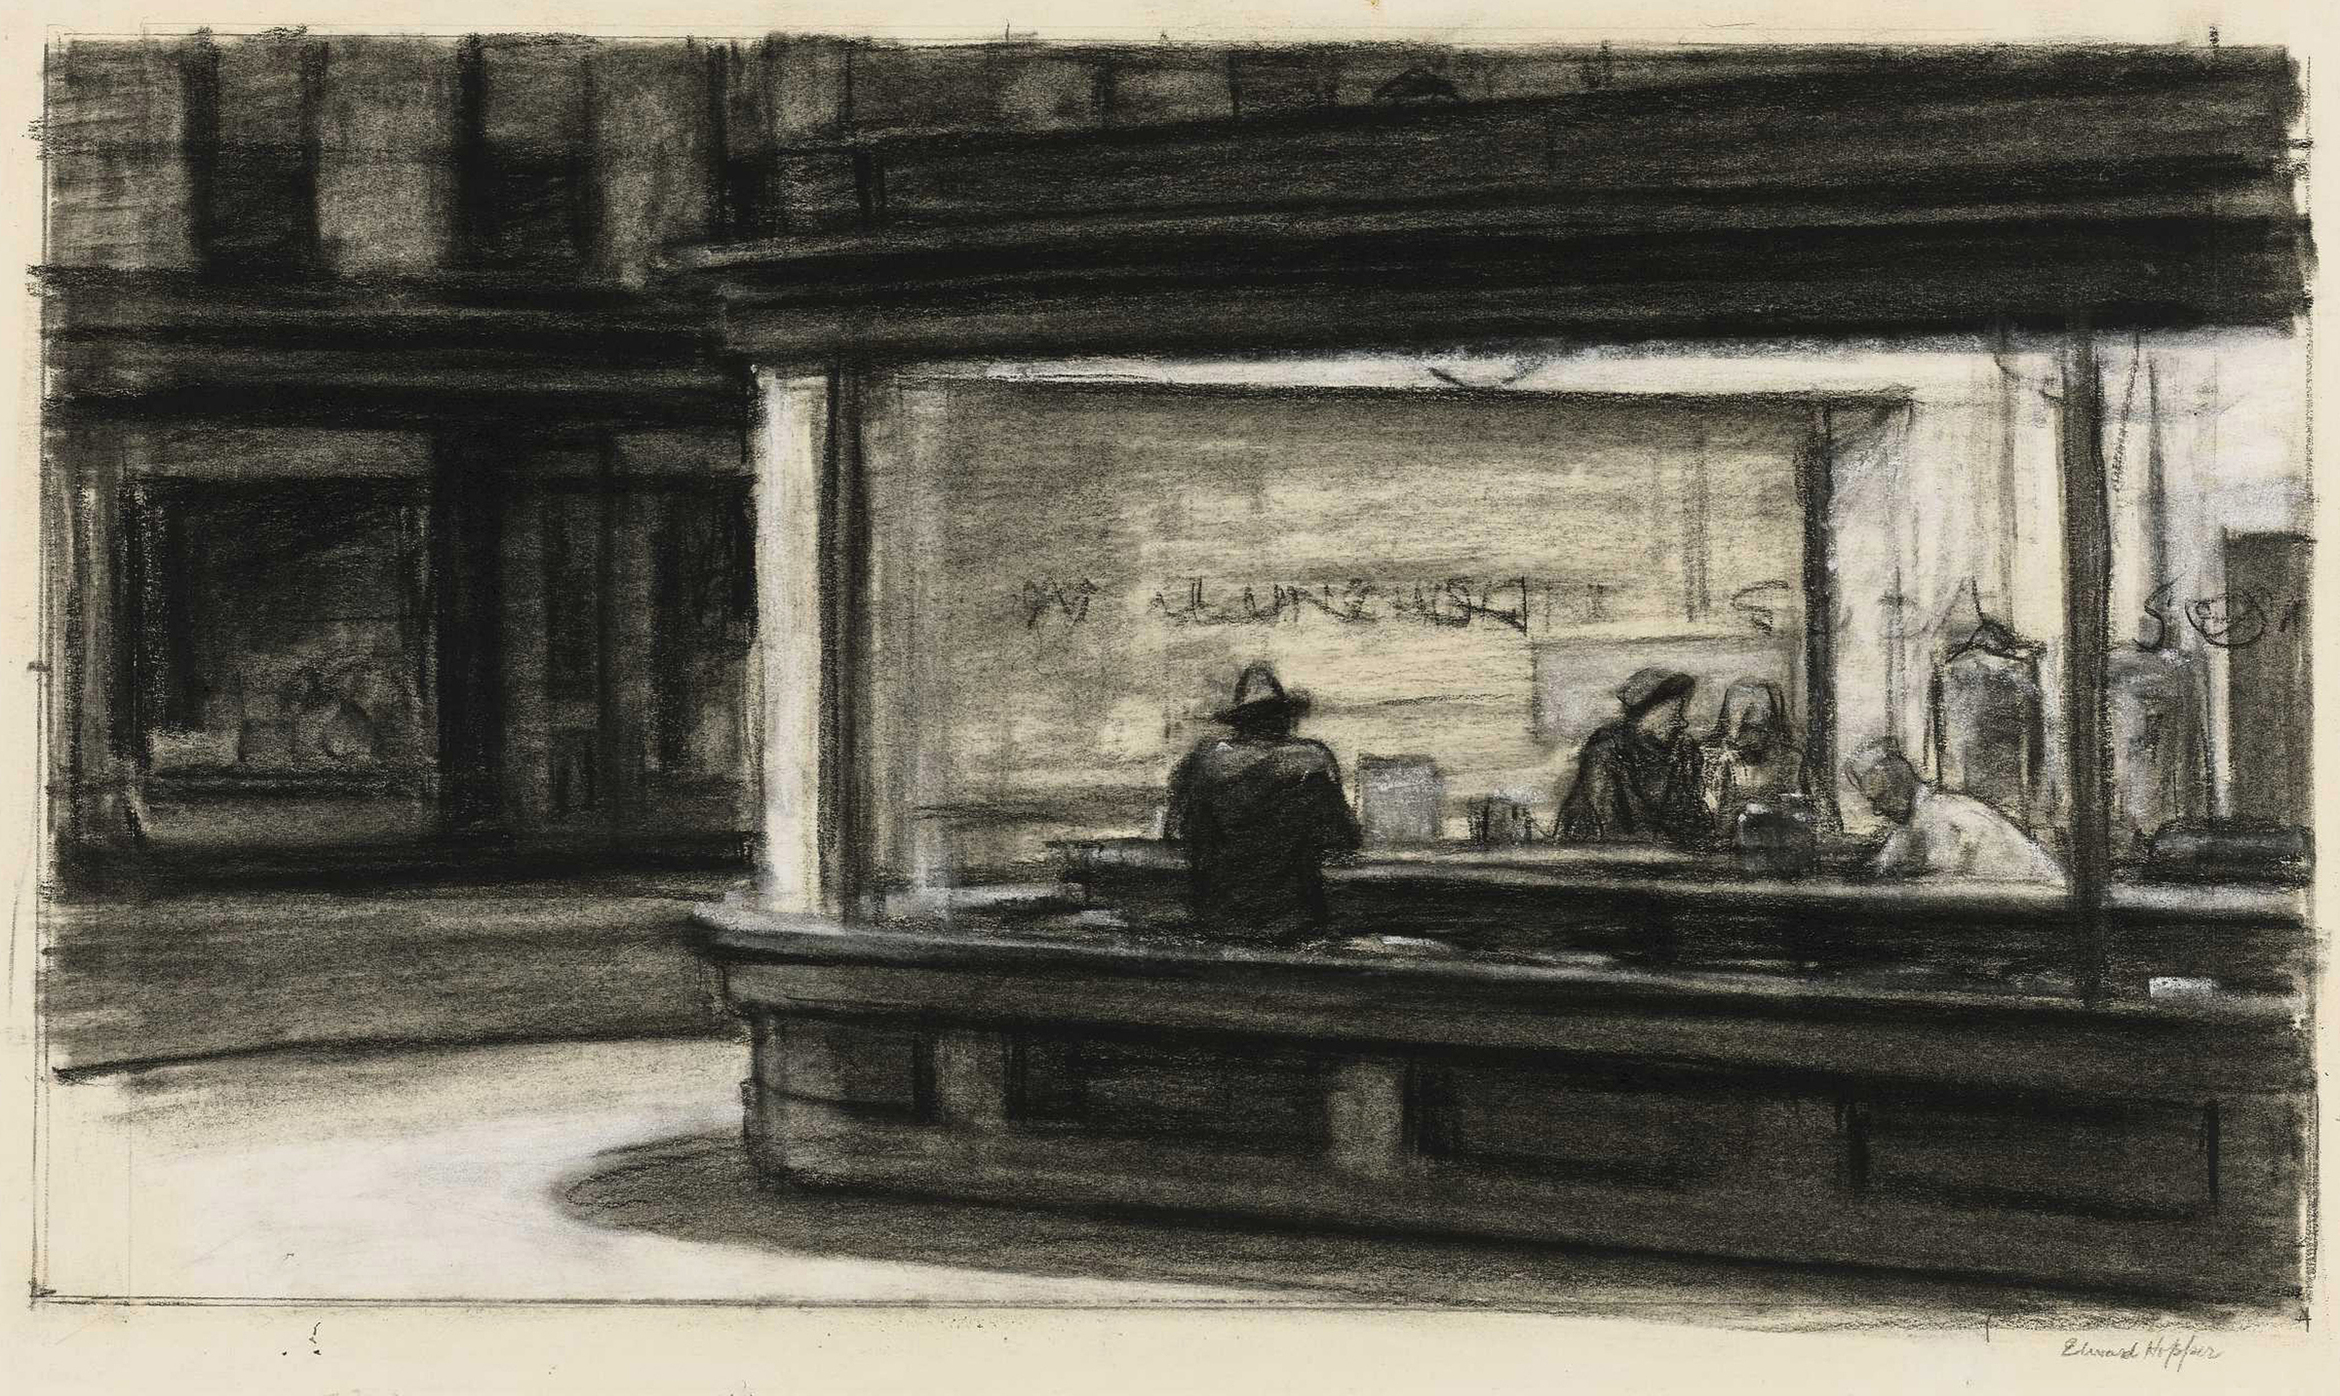 Edward Hopper (1882–1967), Study for Nighthawks, 1941 or 1942. Fabricated chalk and charcoal on paper; 11 1/8 × 15 in. (28.3 × 38.1 cm). Whitney Museum of American Art, New York; purchase and gift of Josephine N. Hopper by exchange